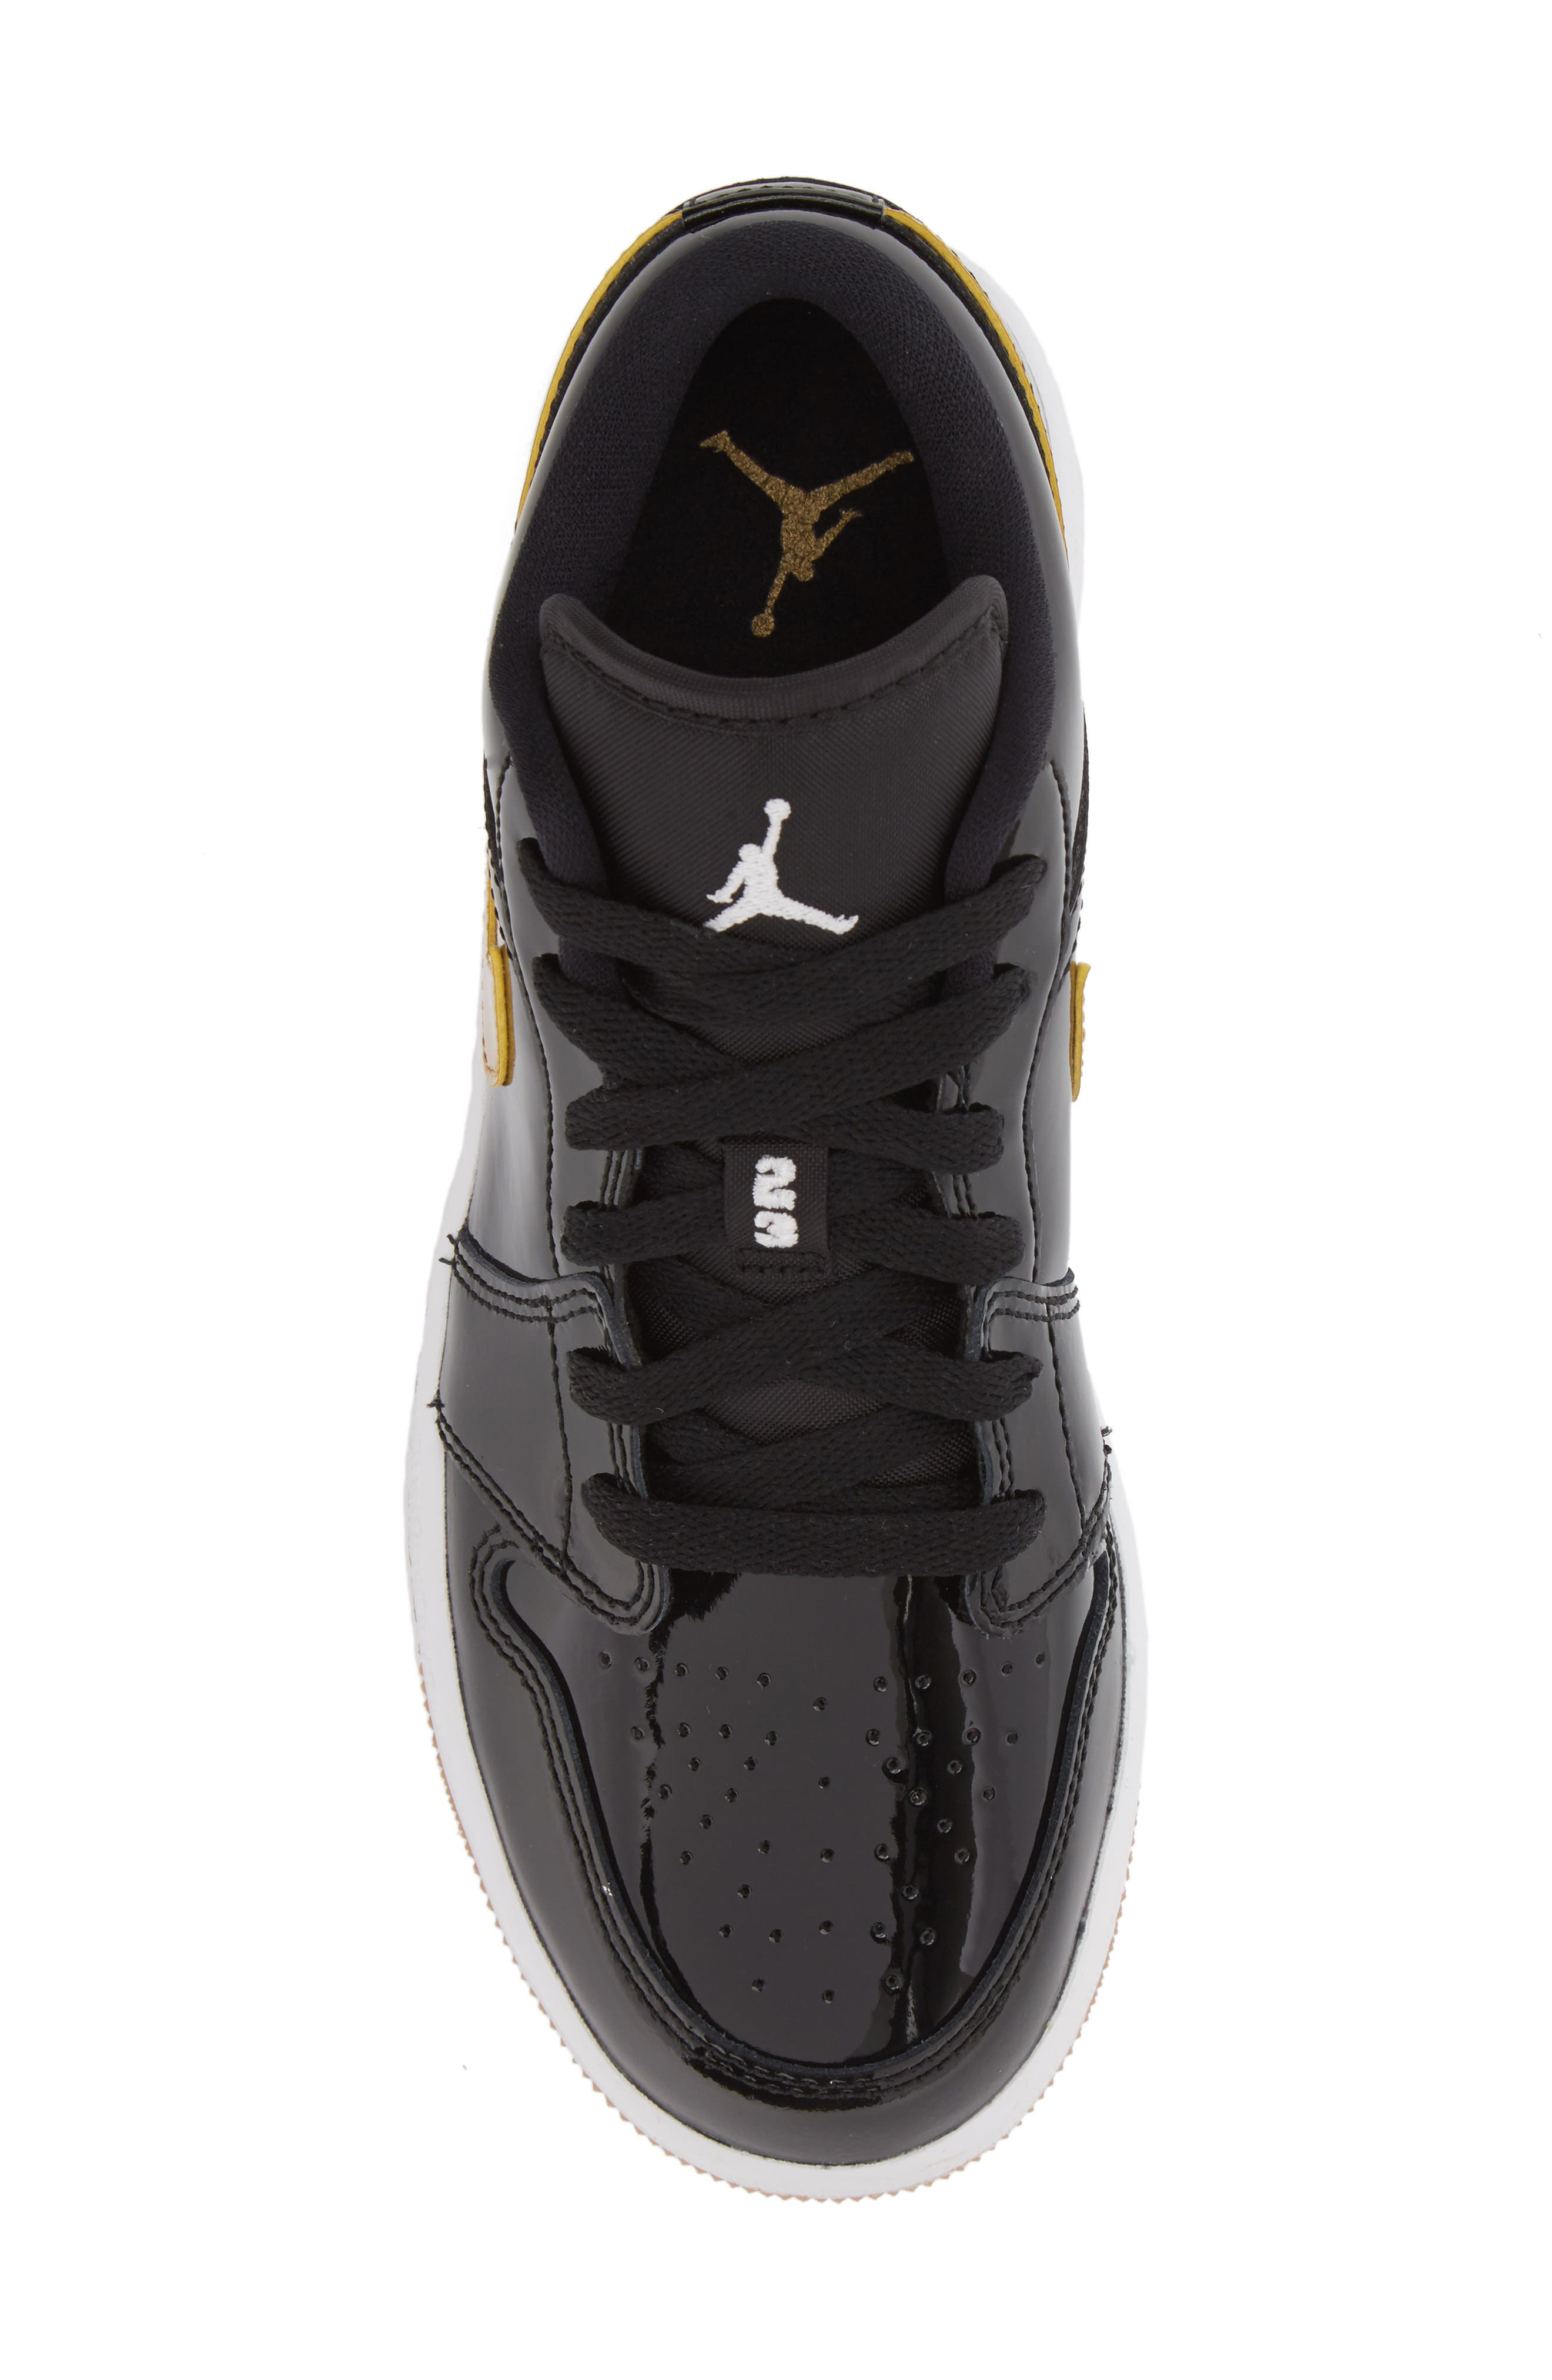 Nike 'Jordan 1 Low' Basketball Shoe,                             Alternate thumbnail 9, color,